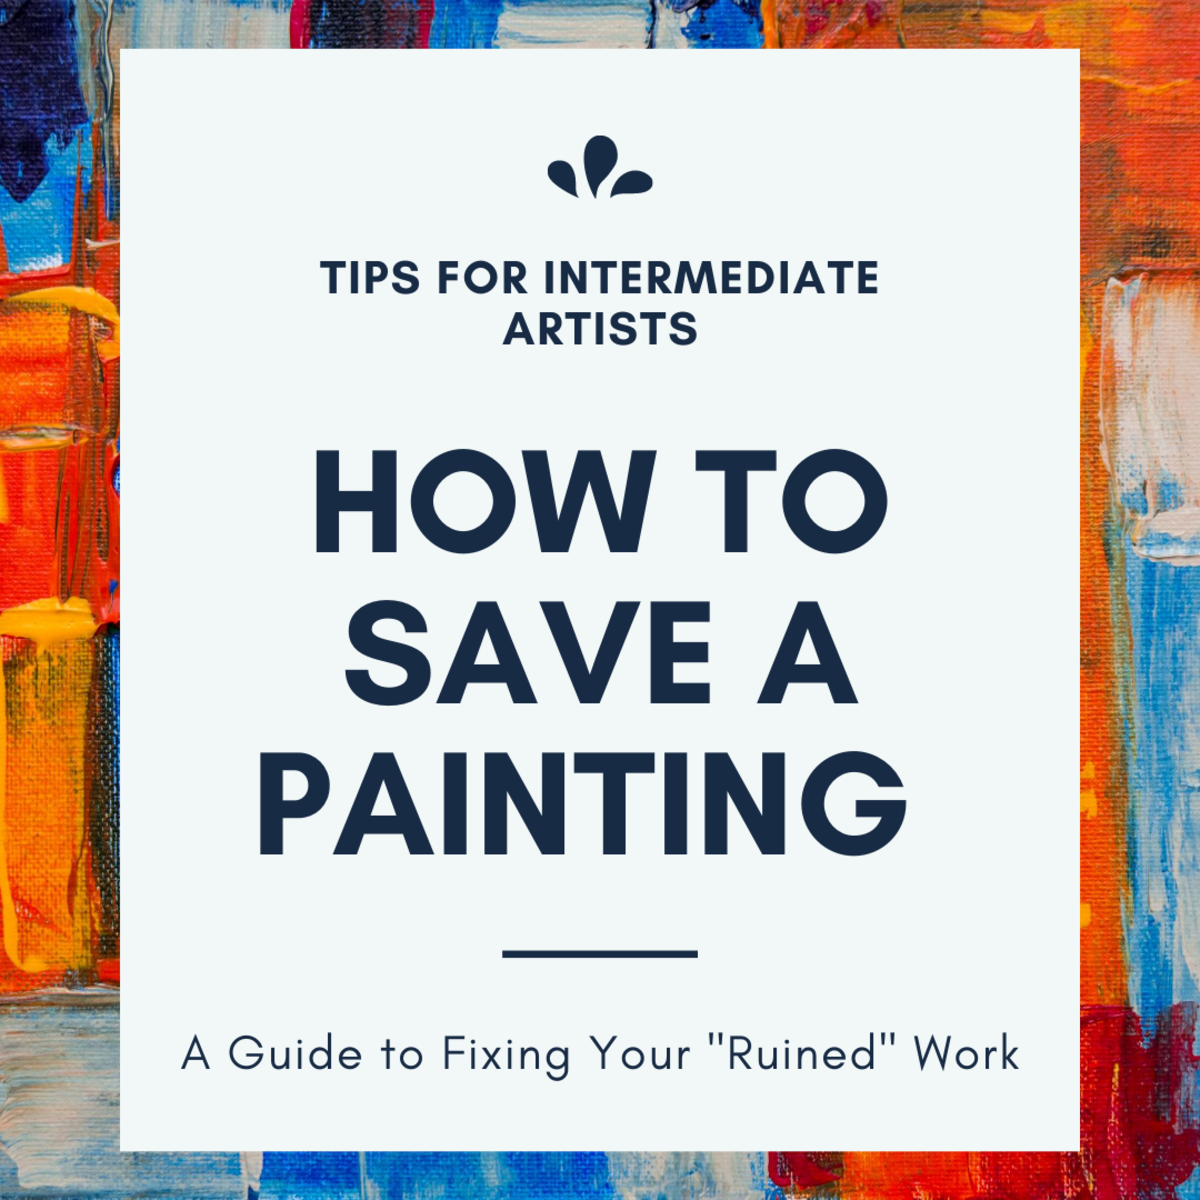 In this guide, I use an example of how I saved a ruined painting of my own.